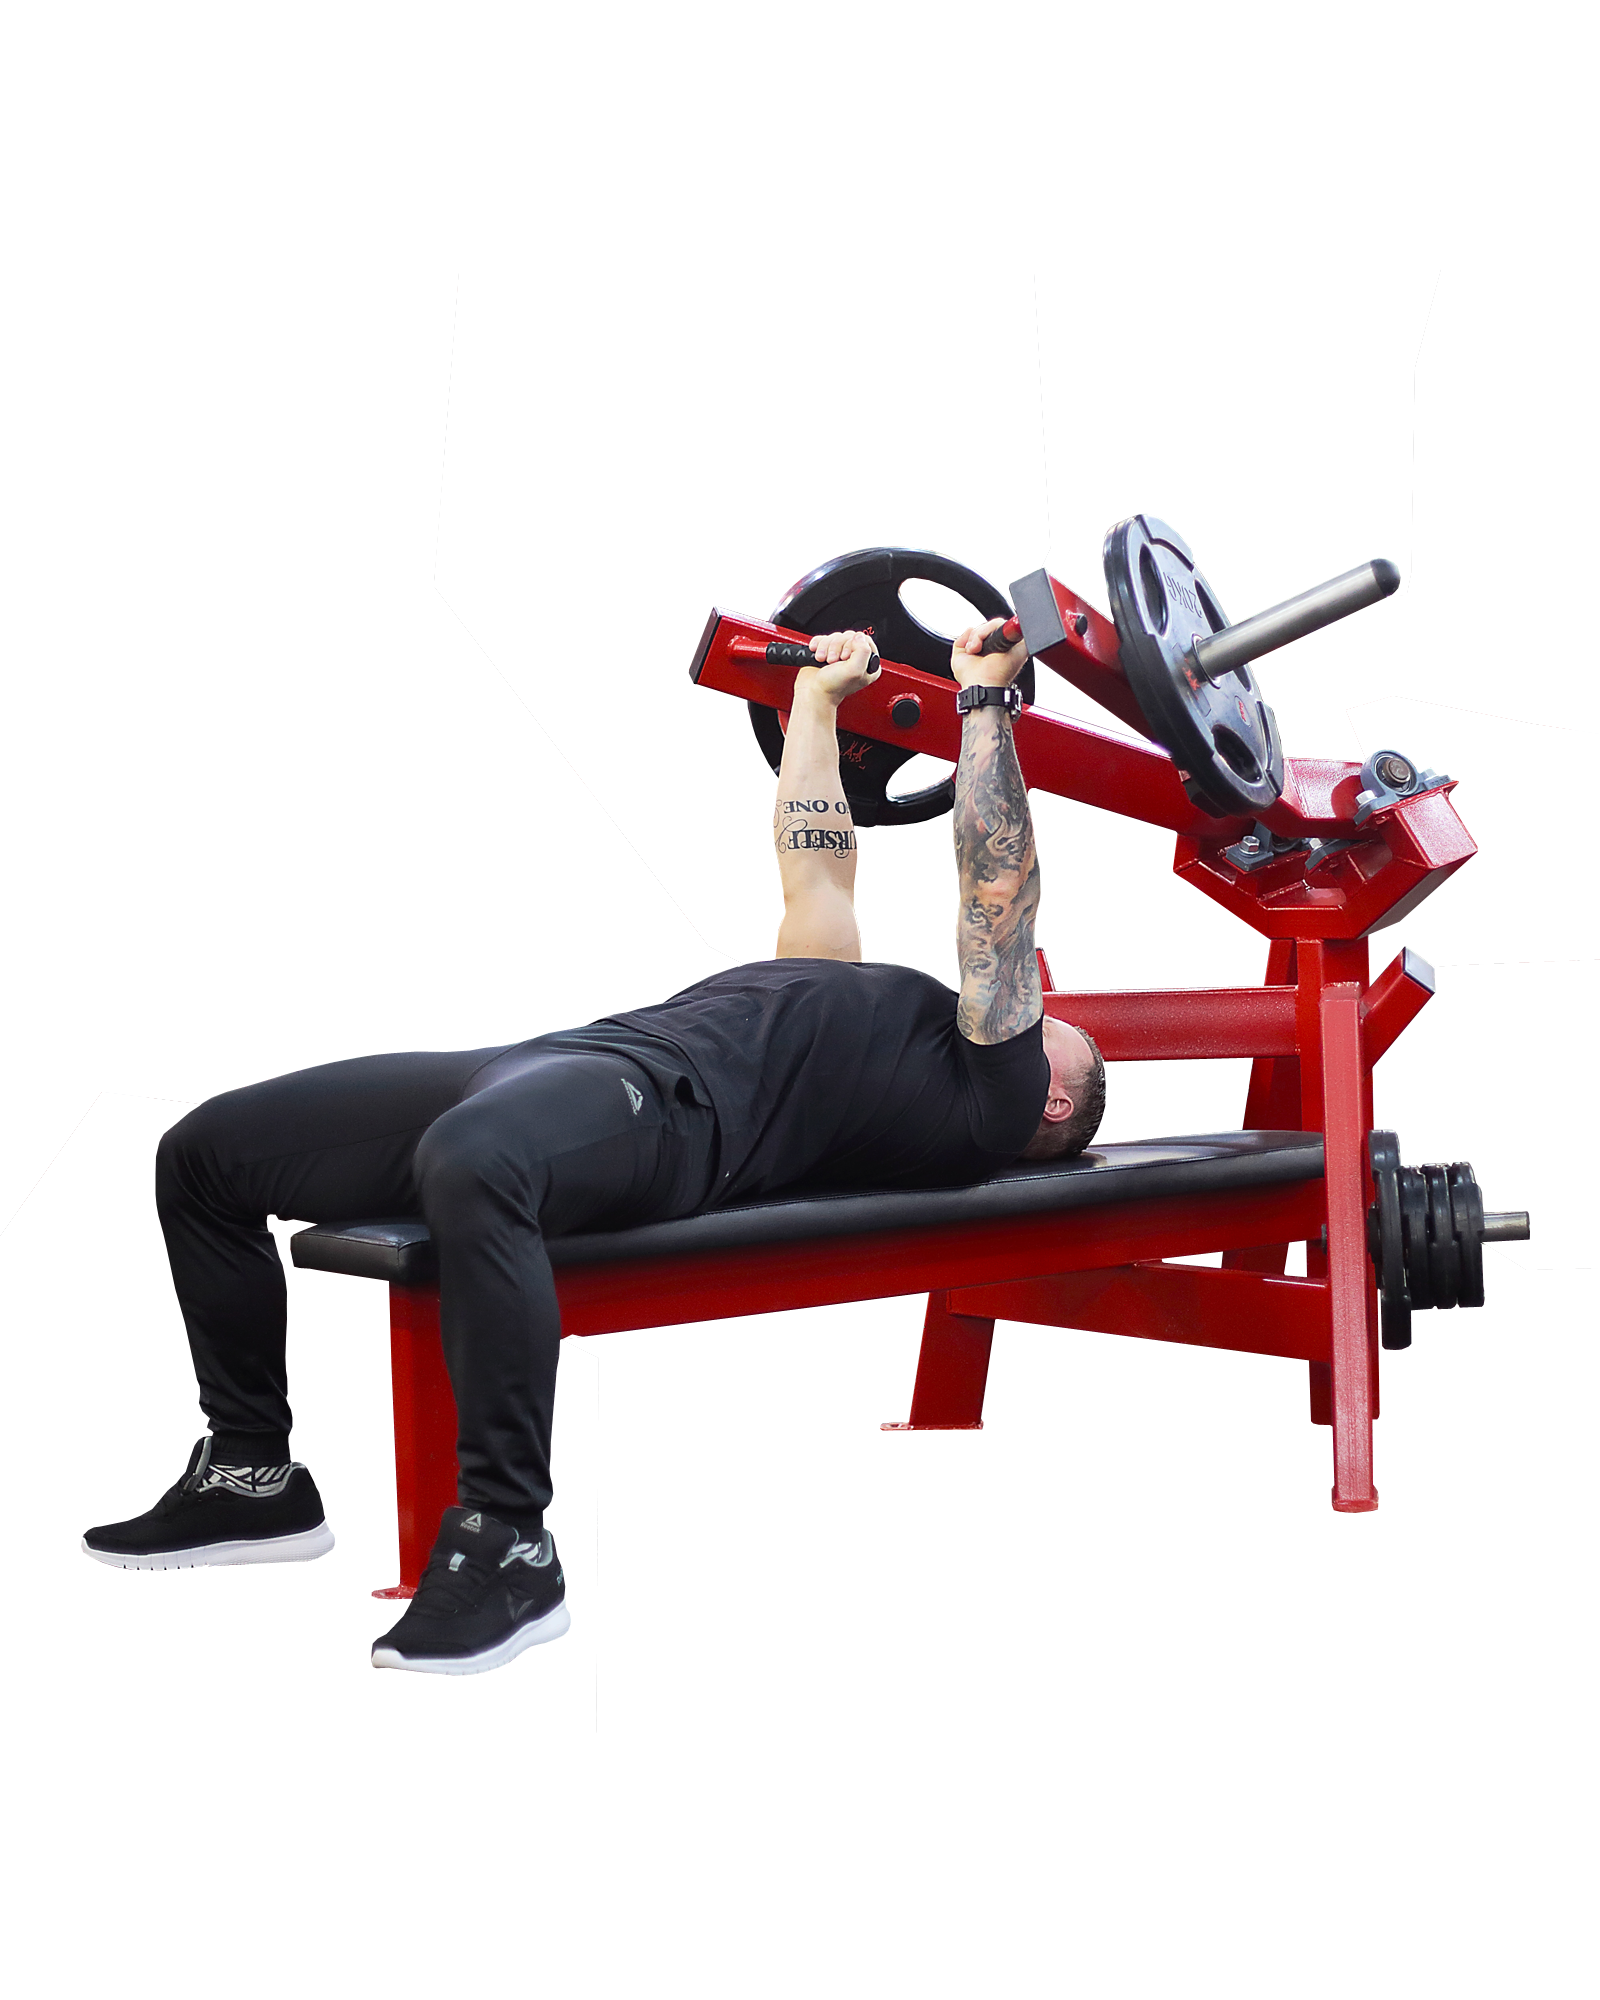 Wondrous A1Xx Flat Chest Press Machine Plate Loaded Camellatalisay Diy Chair Ideas Camellatalisaycom